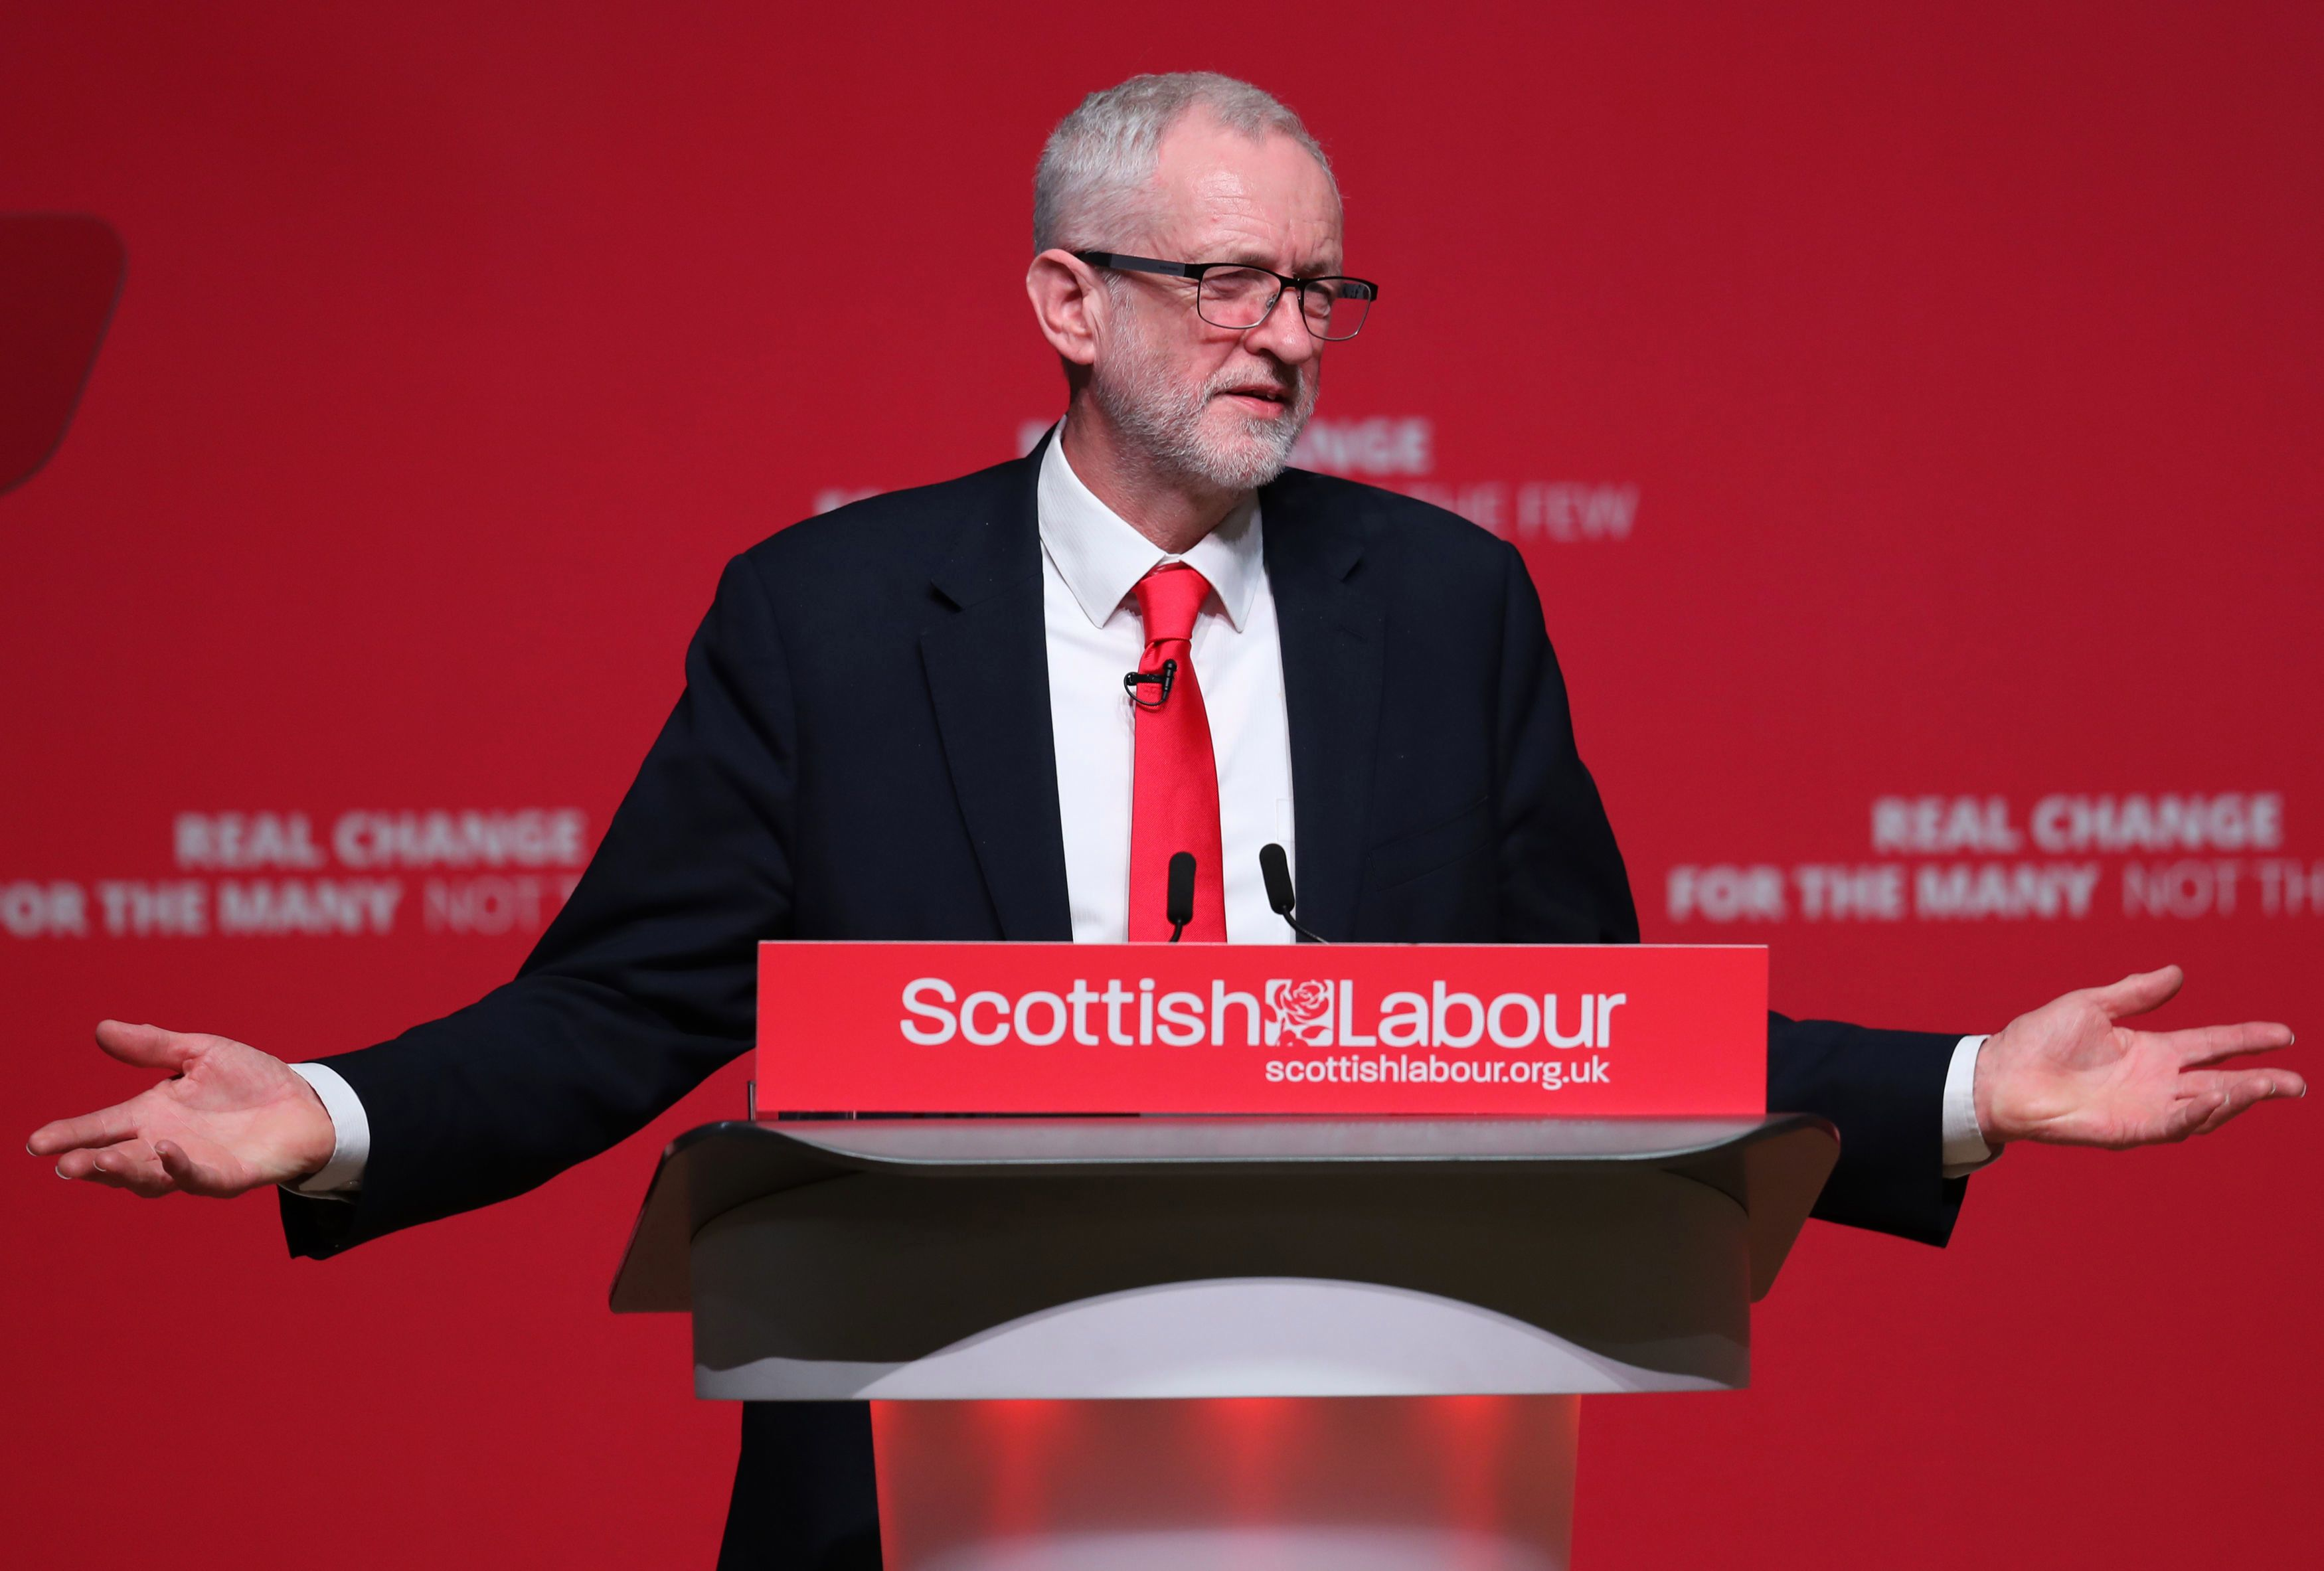 Jeremy Corbyn suffers blow as Labour peer rejects chance to rule over anti-Semitism complaints